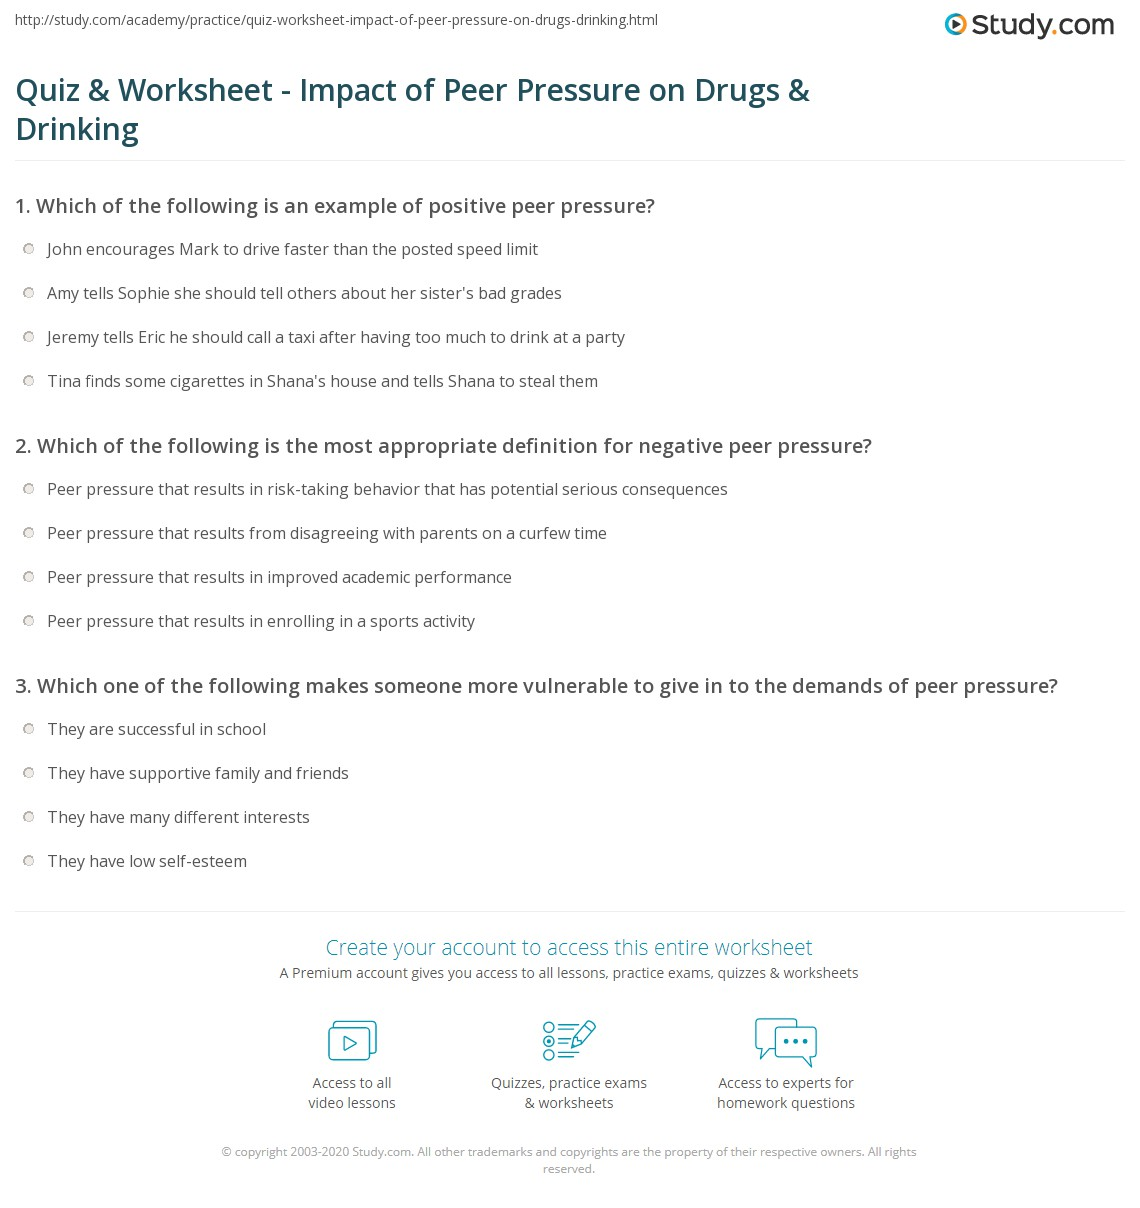 quiz worksheet impact of peer pressure on drugs drinking print peer pressure drugs drinking worksheet